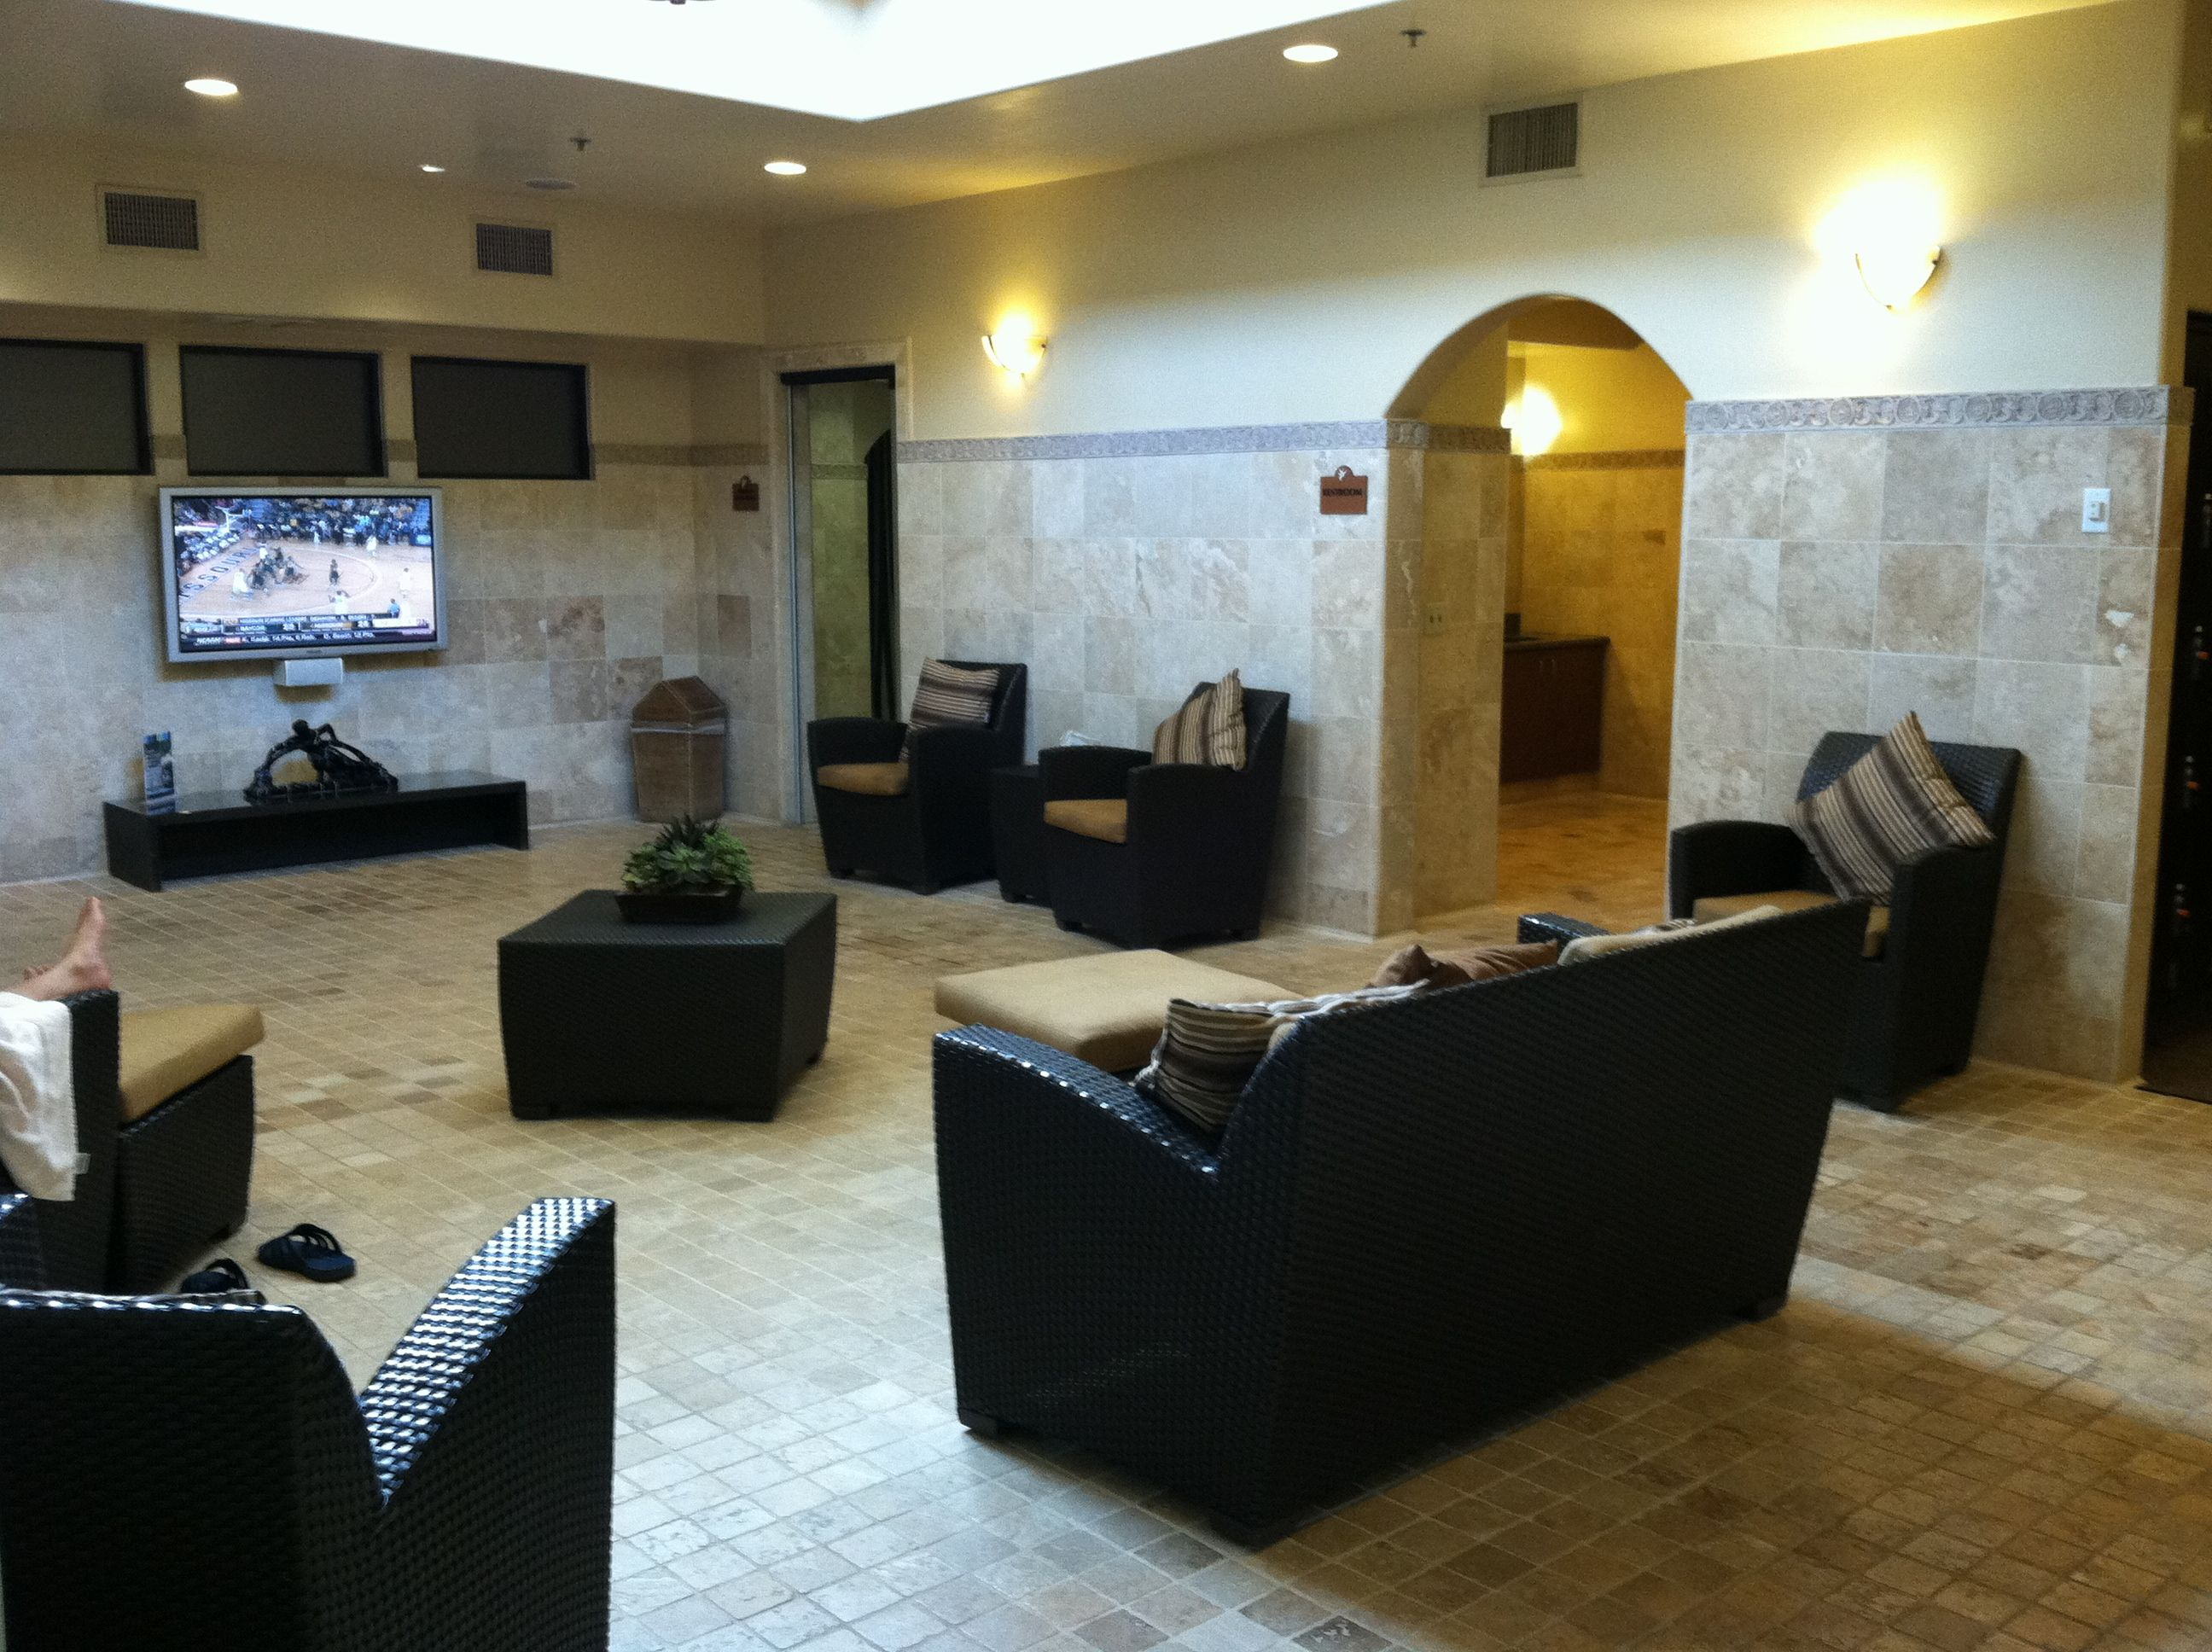 Glen ivy rest time (men's locker room)